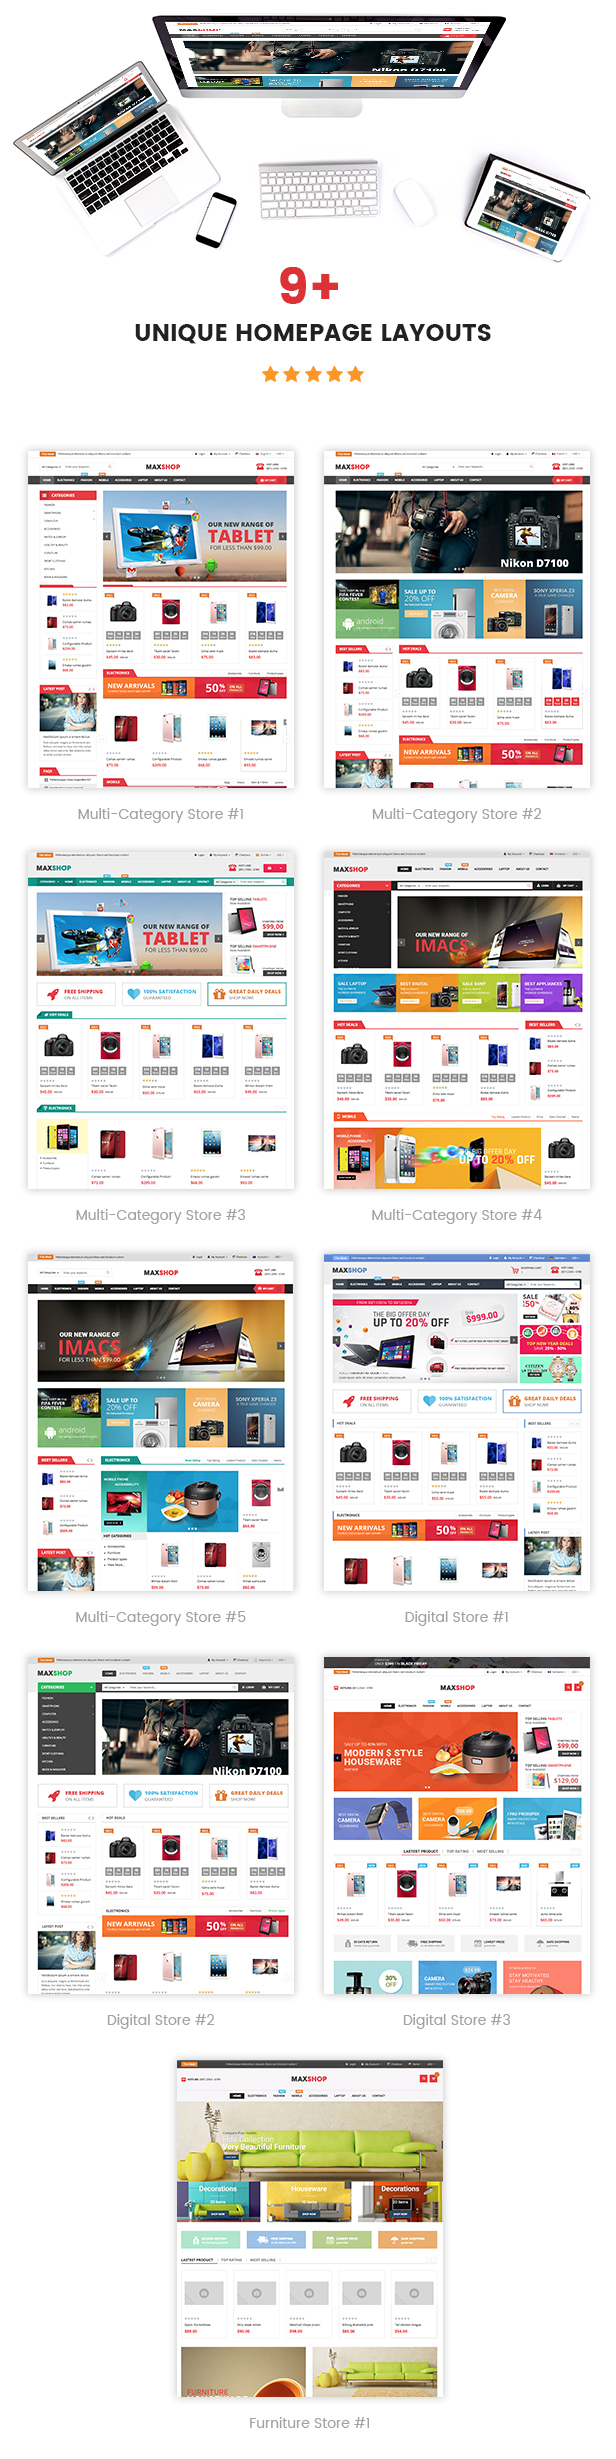 Maxshop - Homepage Styles